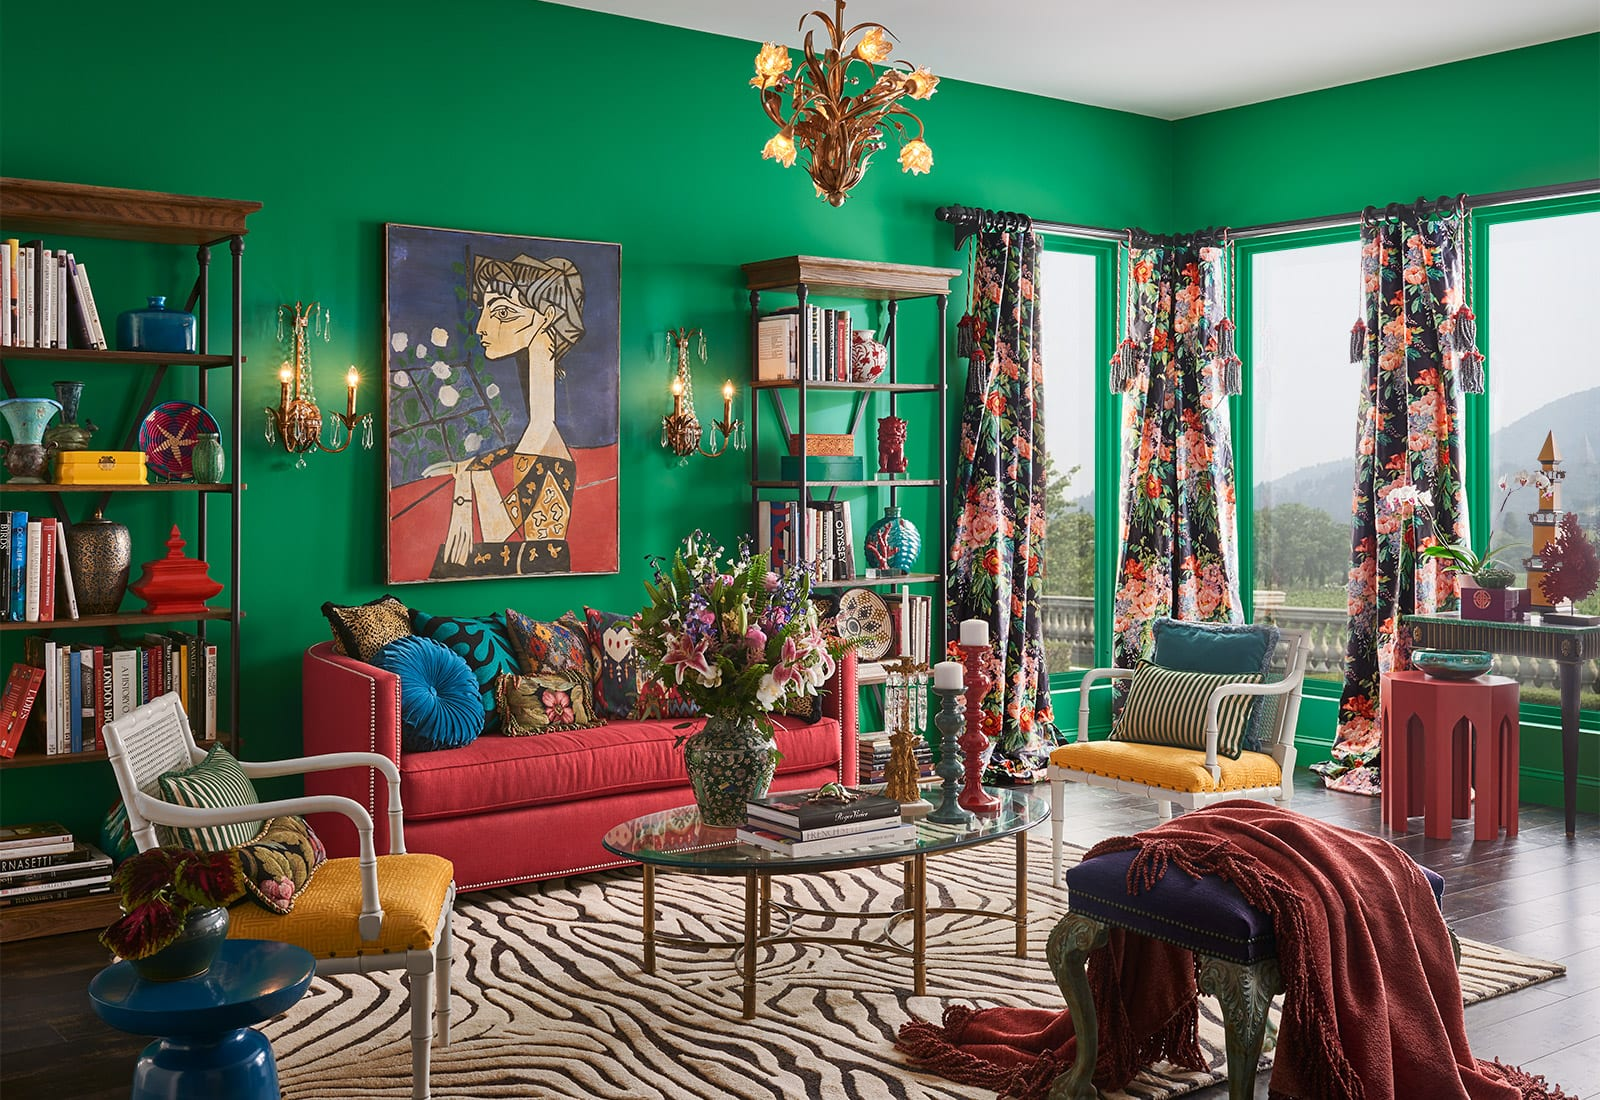 Living room featuring bold green walls with zebra rug and eccentric decor.